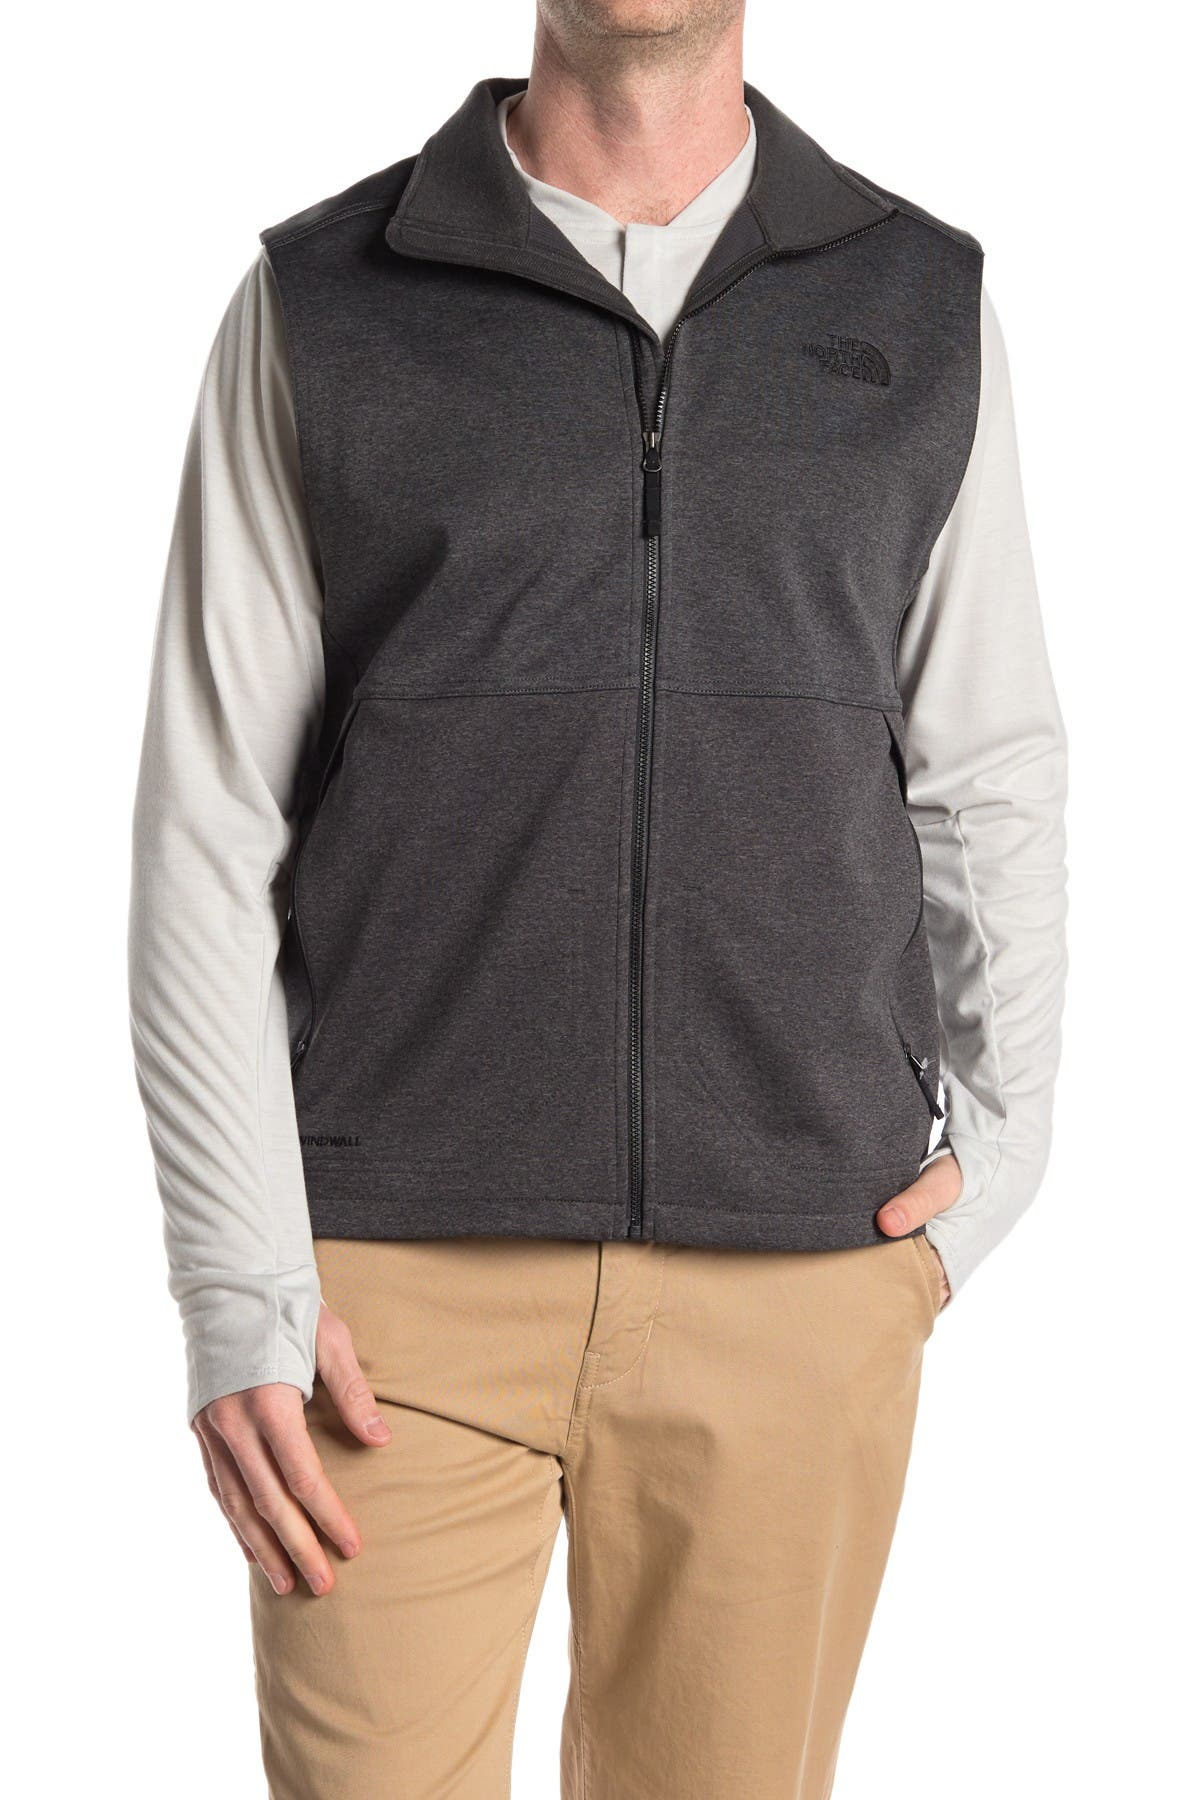 Image of The North Face Apex Canyonwall Vest